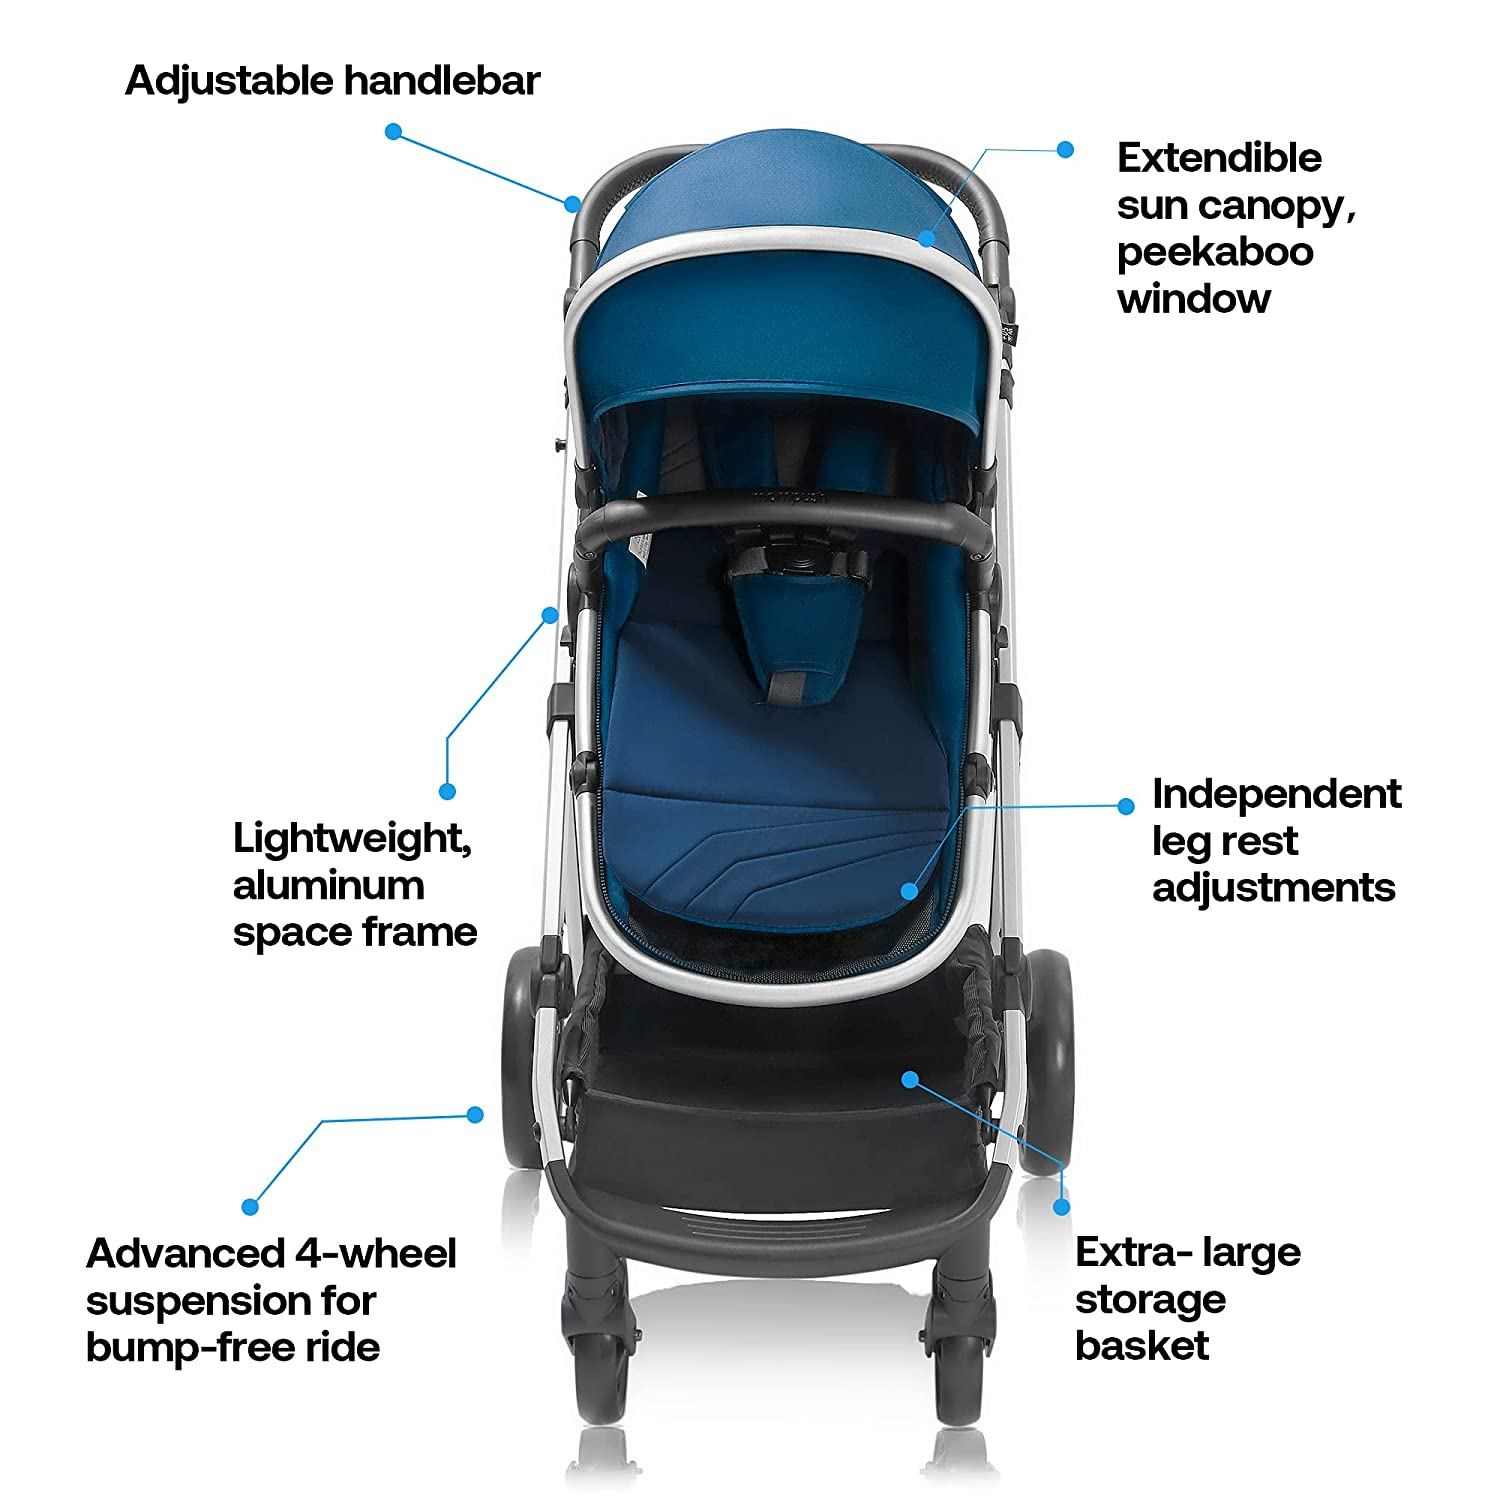 Mompush Foldable 2 in 1 Baby Stroller, True Bassinet Mode with Reversible Seat, Full Recline, Adjustable Handlebar and Footrest, Durable Lightweight Stroller Aluminum Frame with UPF 50+ Sun Canopy